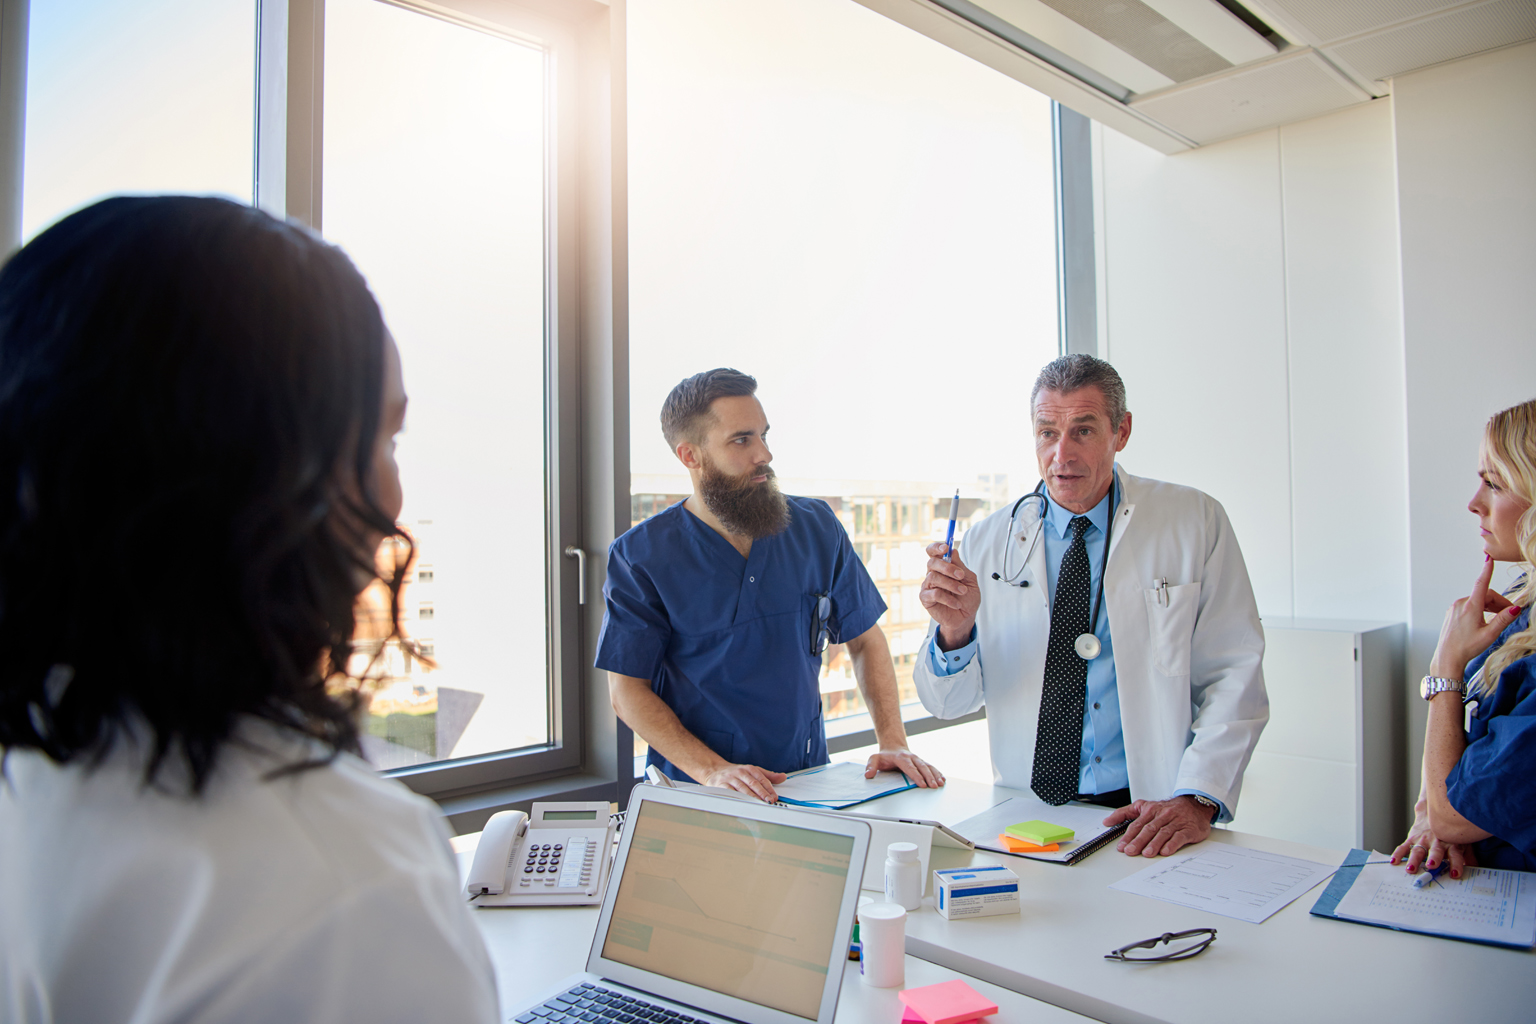 What should nurse leaders know about communication overhauls?